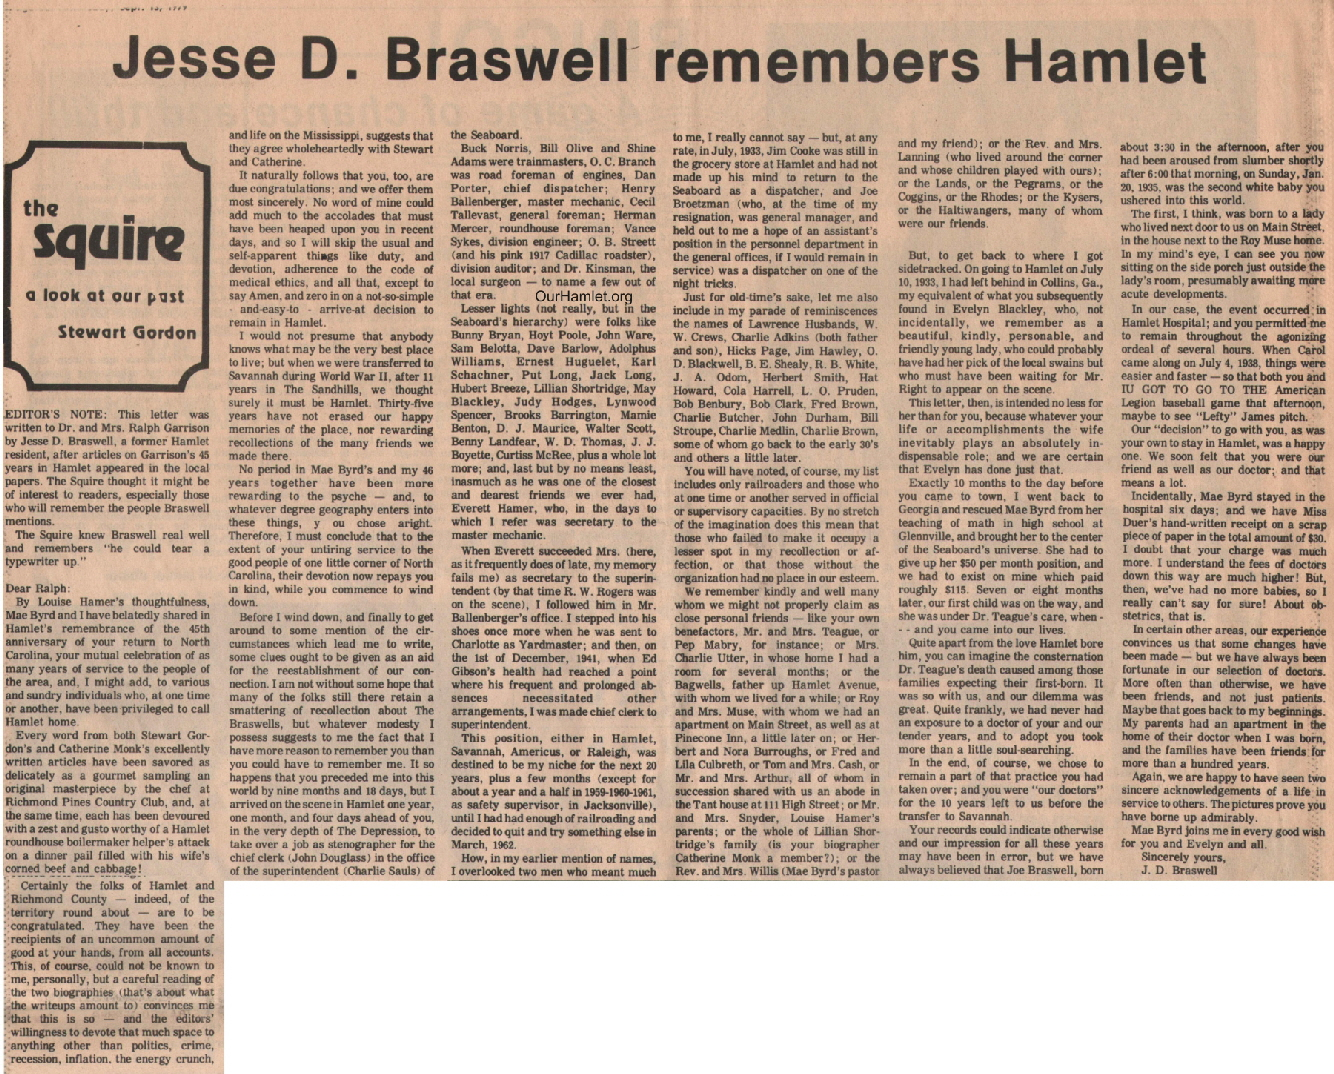 The Squire - Jesse D Braswell remembers Hamlet OH